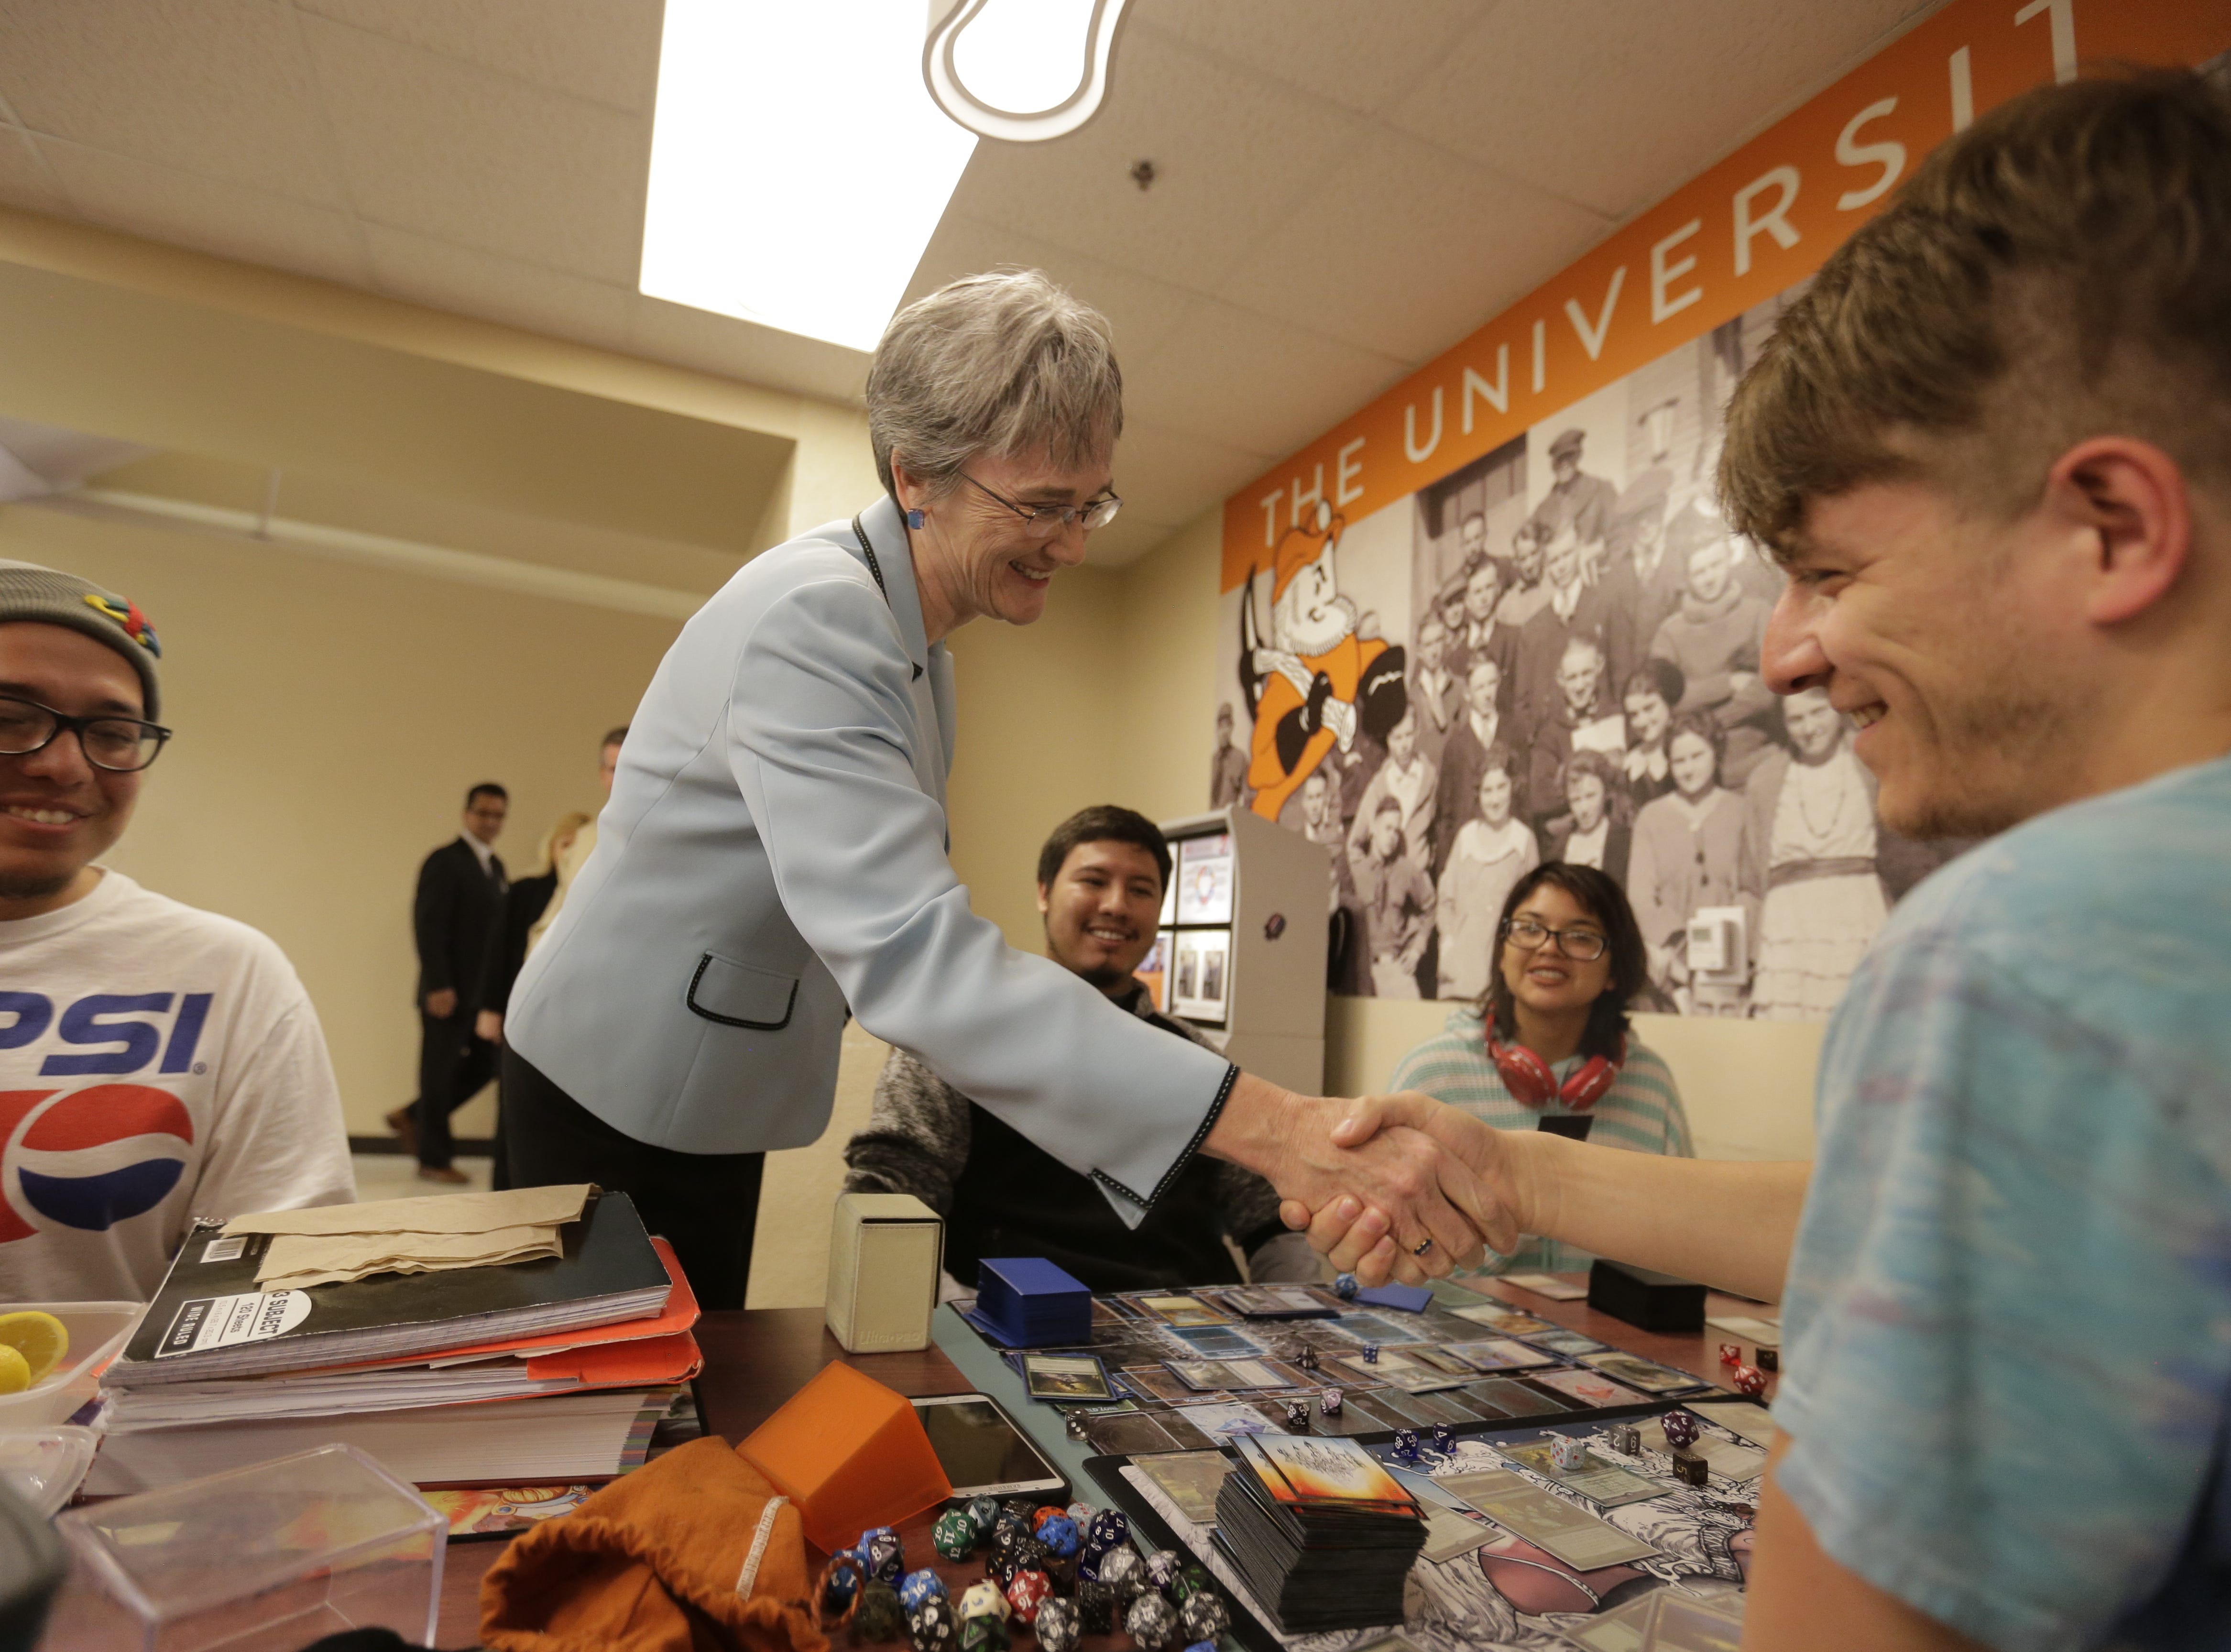 Heather Wilson, expected be UTEP's next president, visits students at the campus union building. Left to right: Cruz Moreno, Heather Wilson, Gustavo Cordero, Leslie Bustos and Eliseo Pulido.